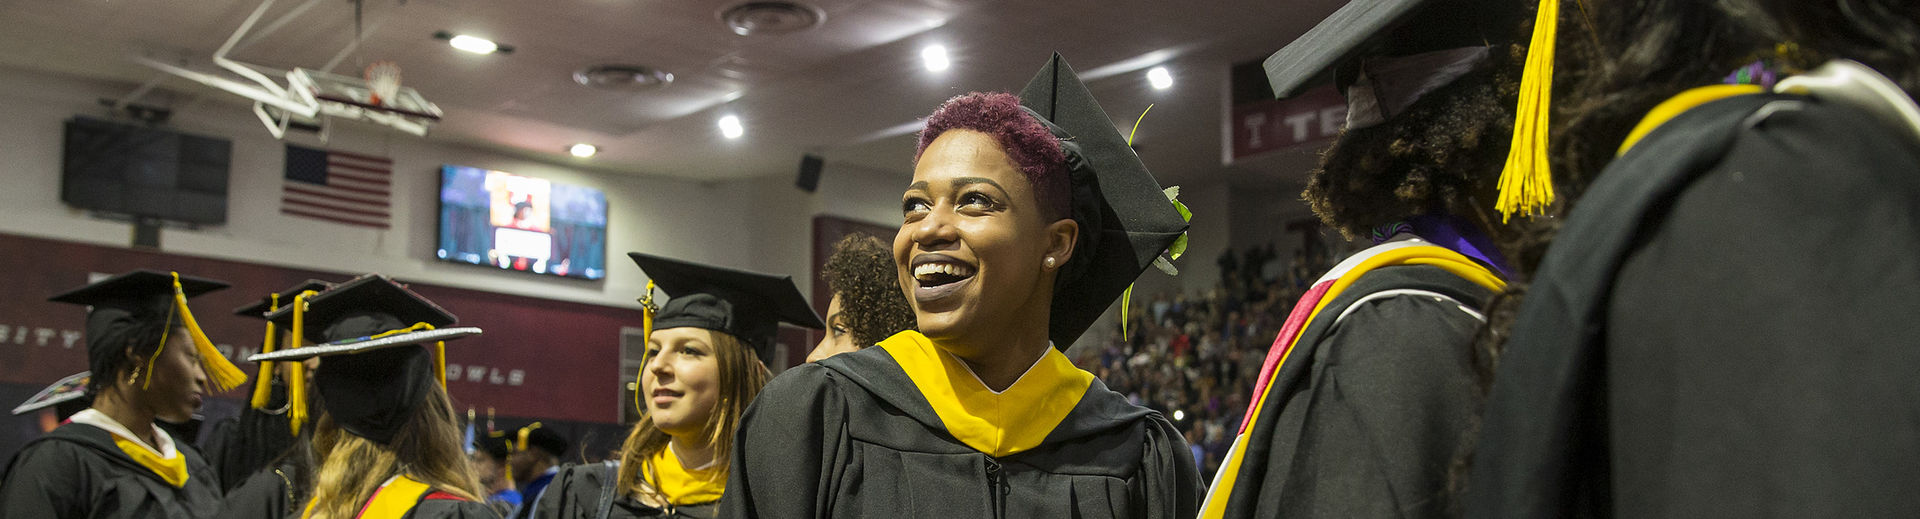 Temple graduates in cap and gown